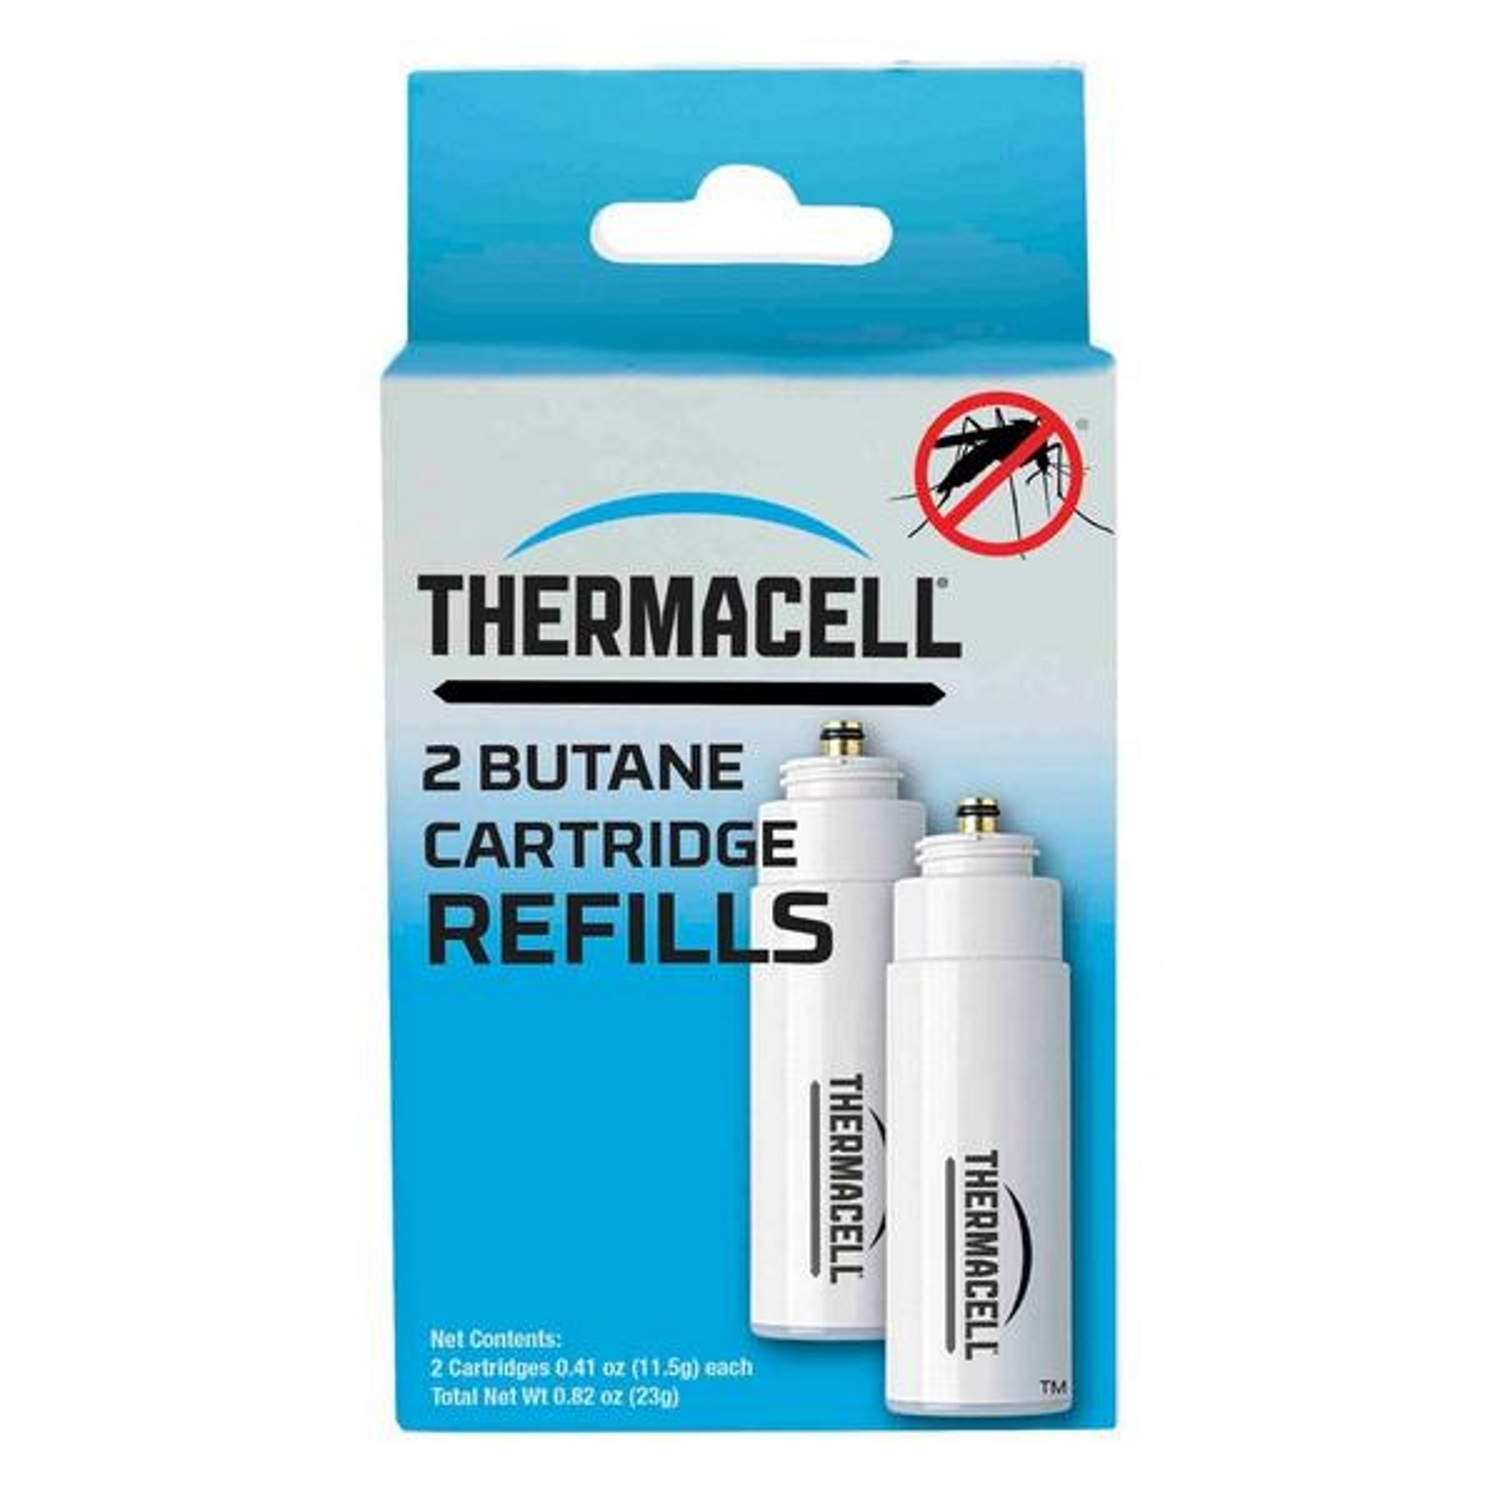 Thermacell Insect Repellent Refill Cartridge Liquid For Mosquitoes 0.2 oz. The Thermacell Mosquito Repellent Replacement Butane Cartridges for Thermacell helps you keep your home or patio free from mosquitoes, black flies and no-see-ums. These butane cartridges provide relief for up to 12 hours each.